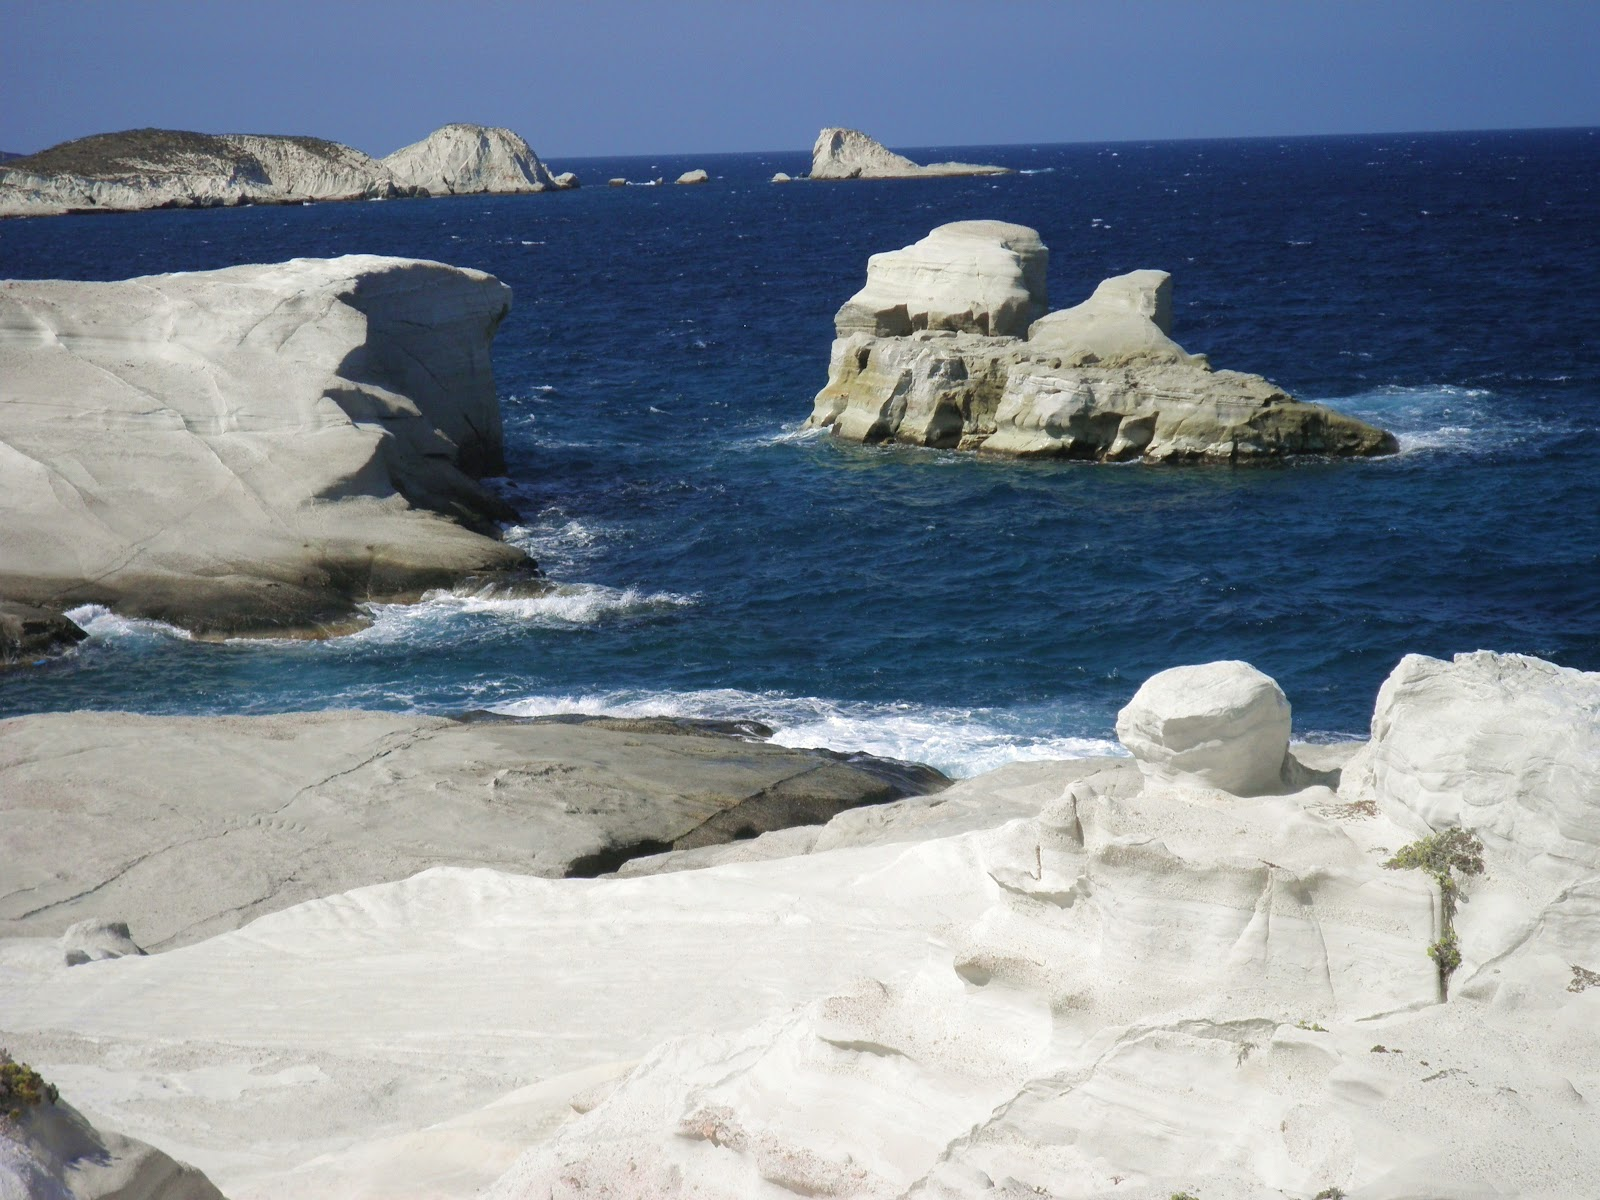 Travel in the nature: Beaches of Milos and Kimolos